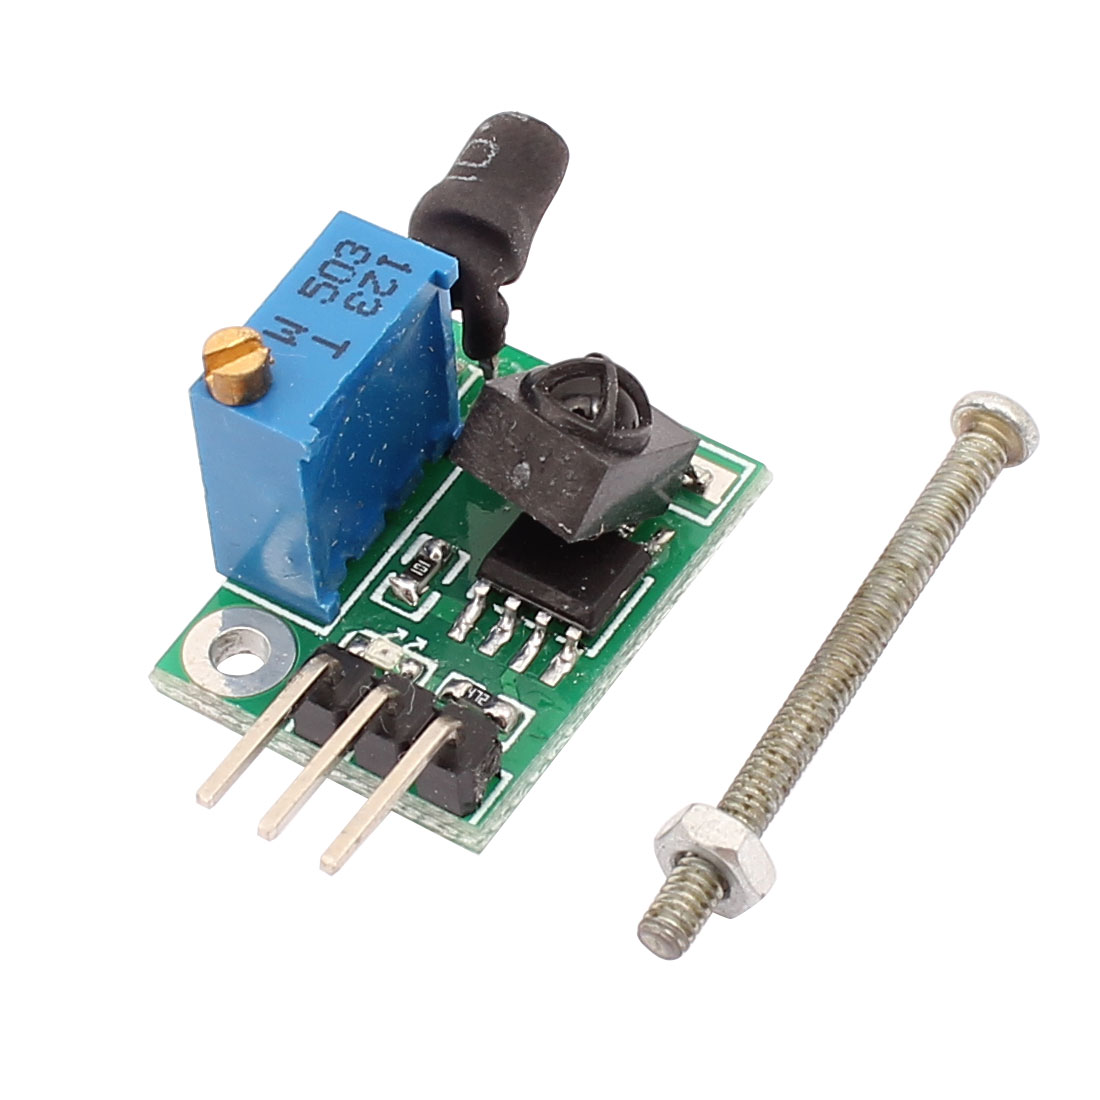 Latest Version Digital Infrared Obstacle Avoidance Sensor Module Kit